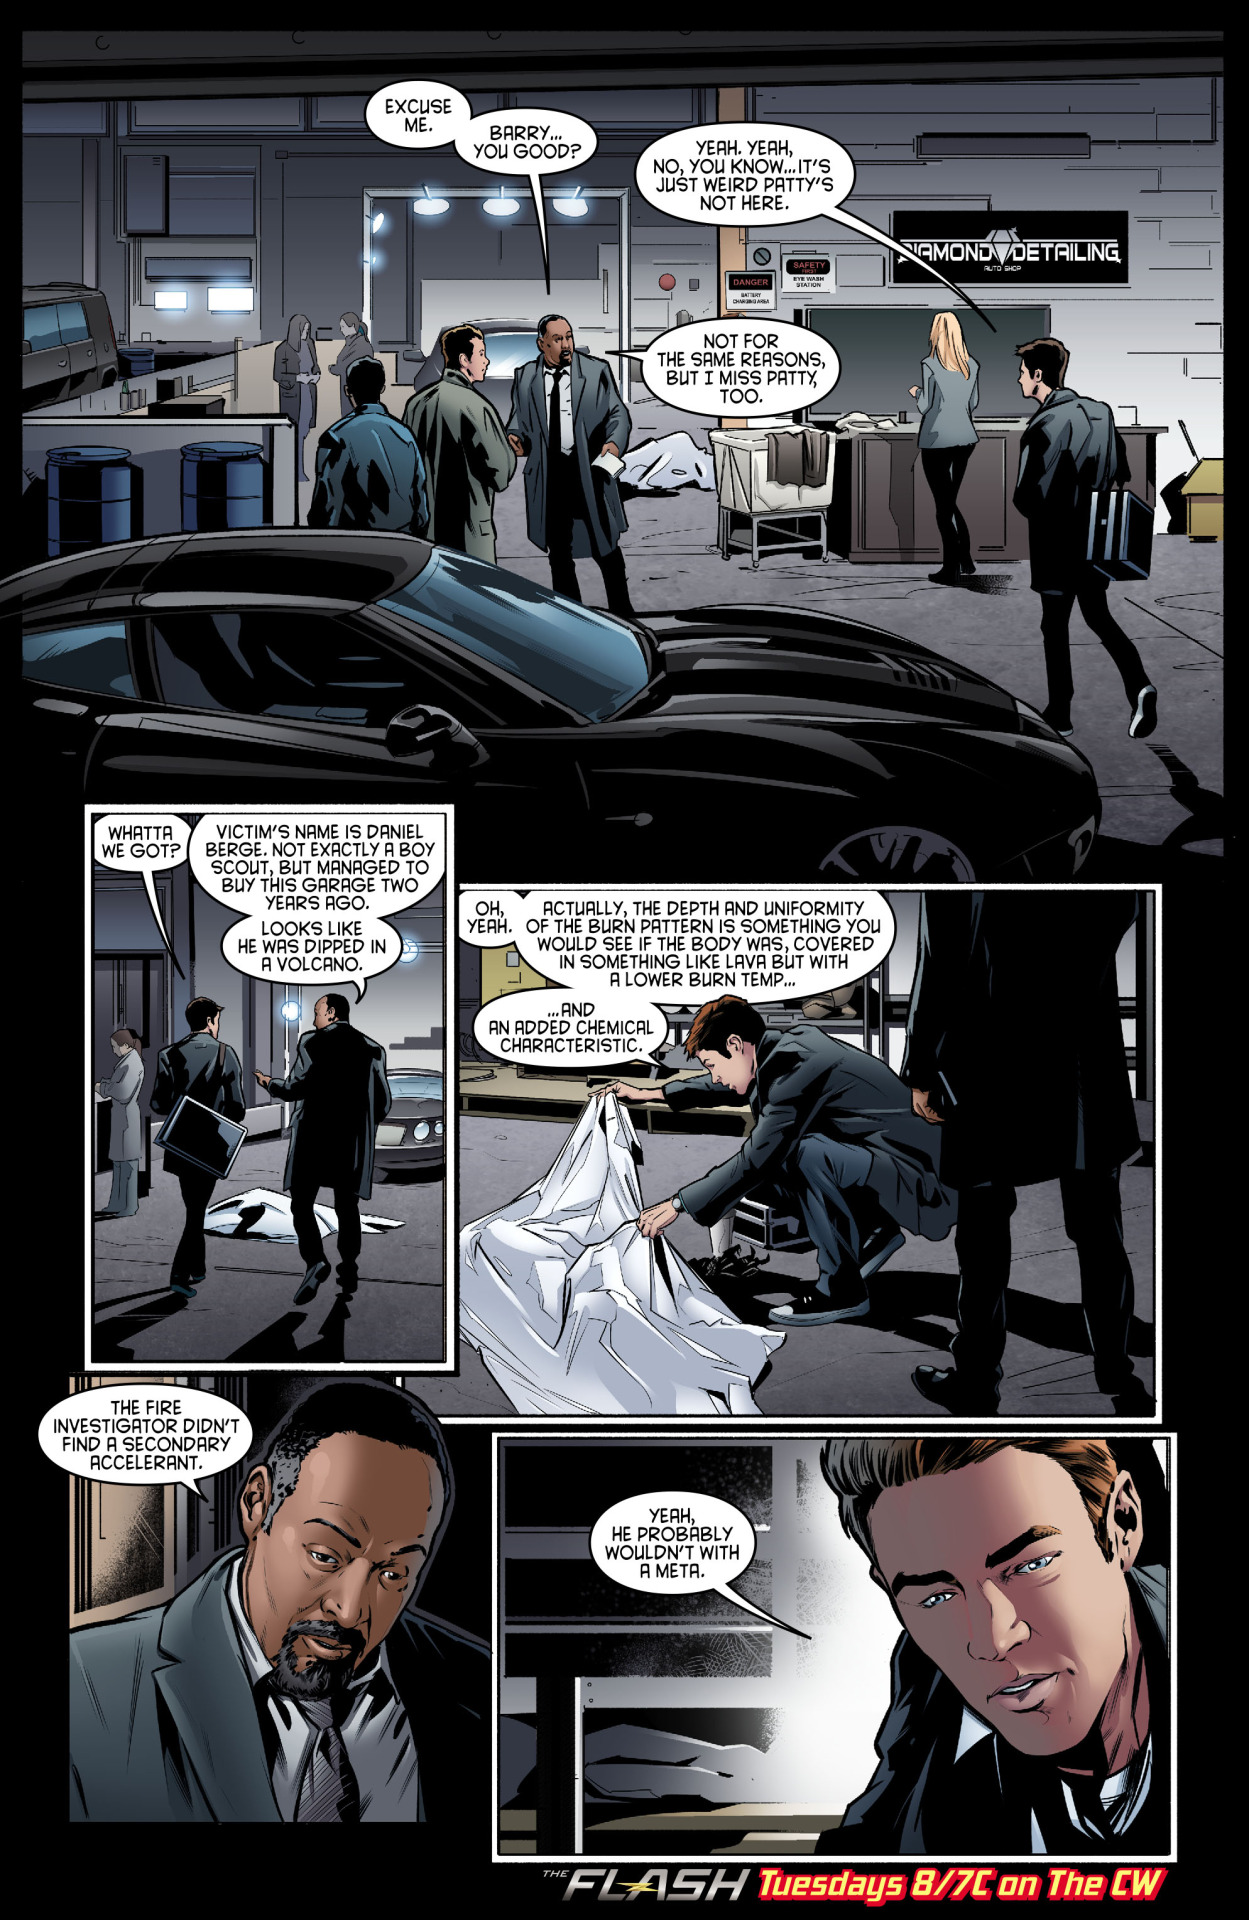 The Flash - Episode 2.12 - Fast Lane - Comic Preview